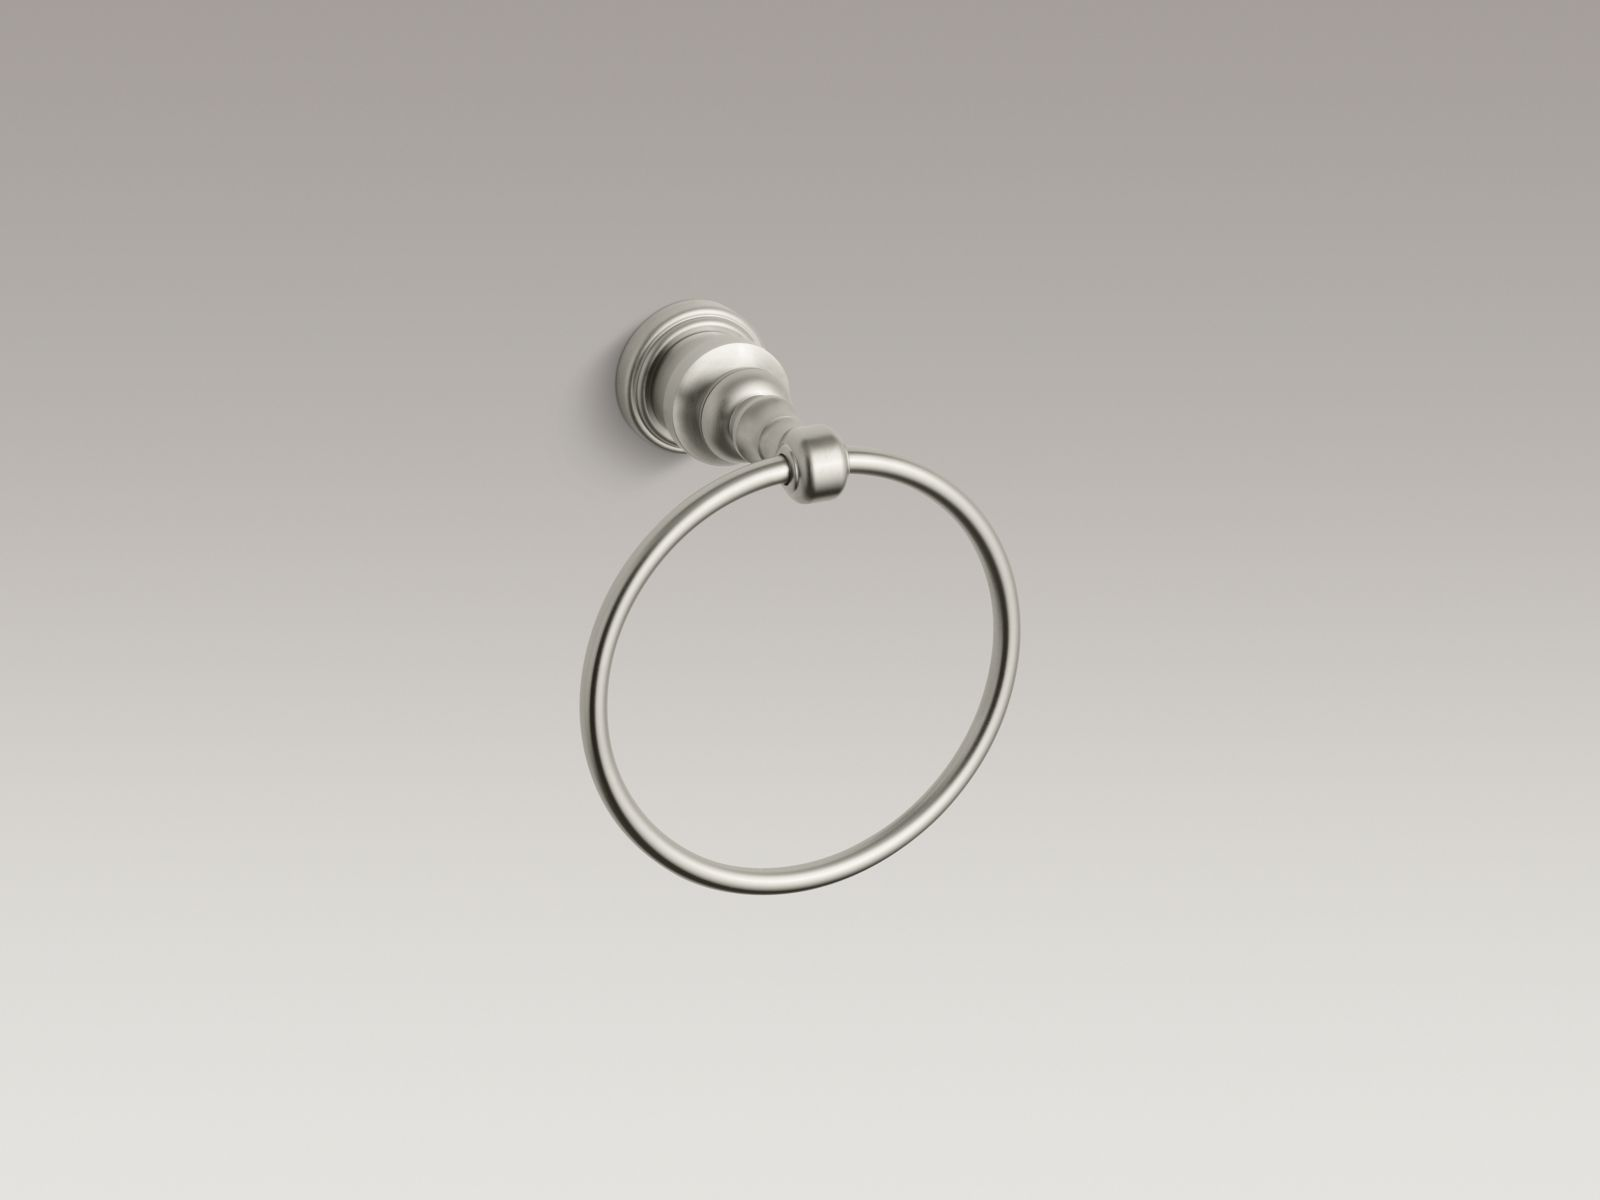 Kohler K-6817-BN IV Georges Brass Towel Ring Vibrant Brushed Nickel